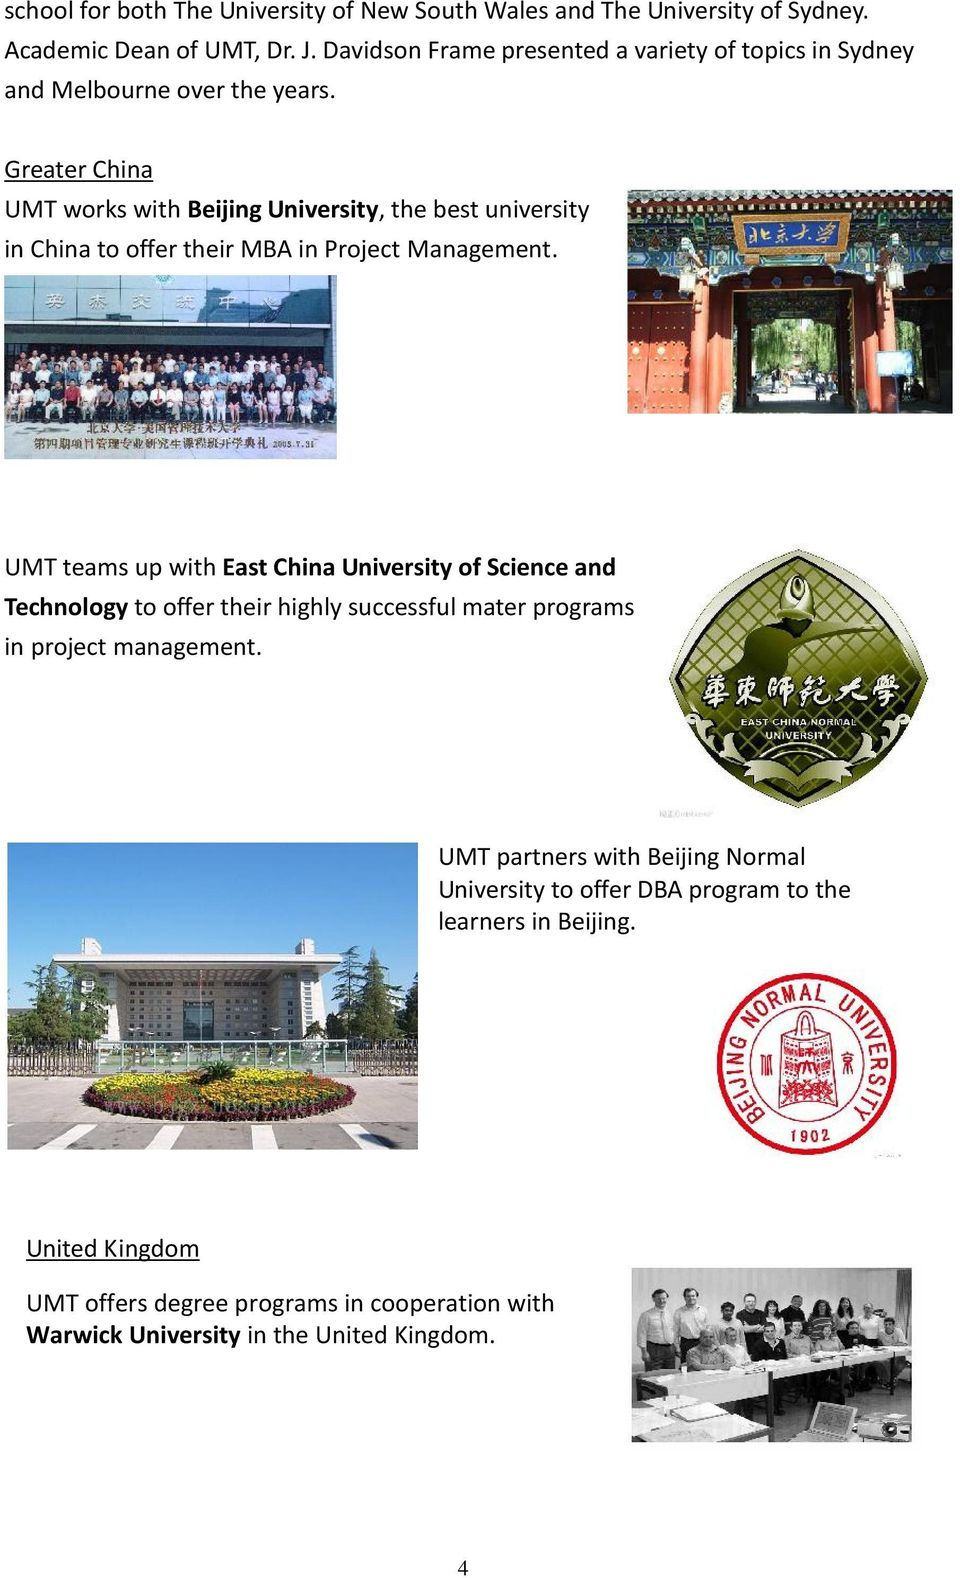 Greater China UMT works with Beijing University, the best university in China to offer their MBA in Project Management.